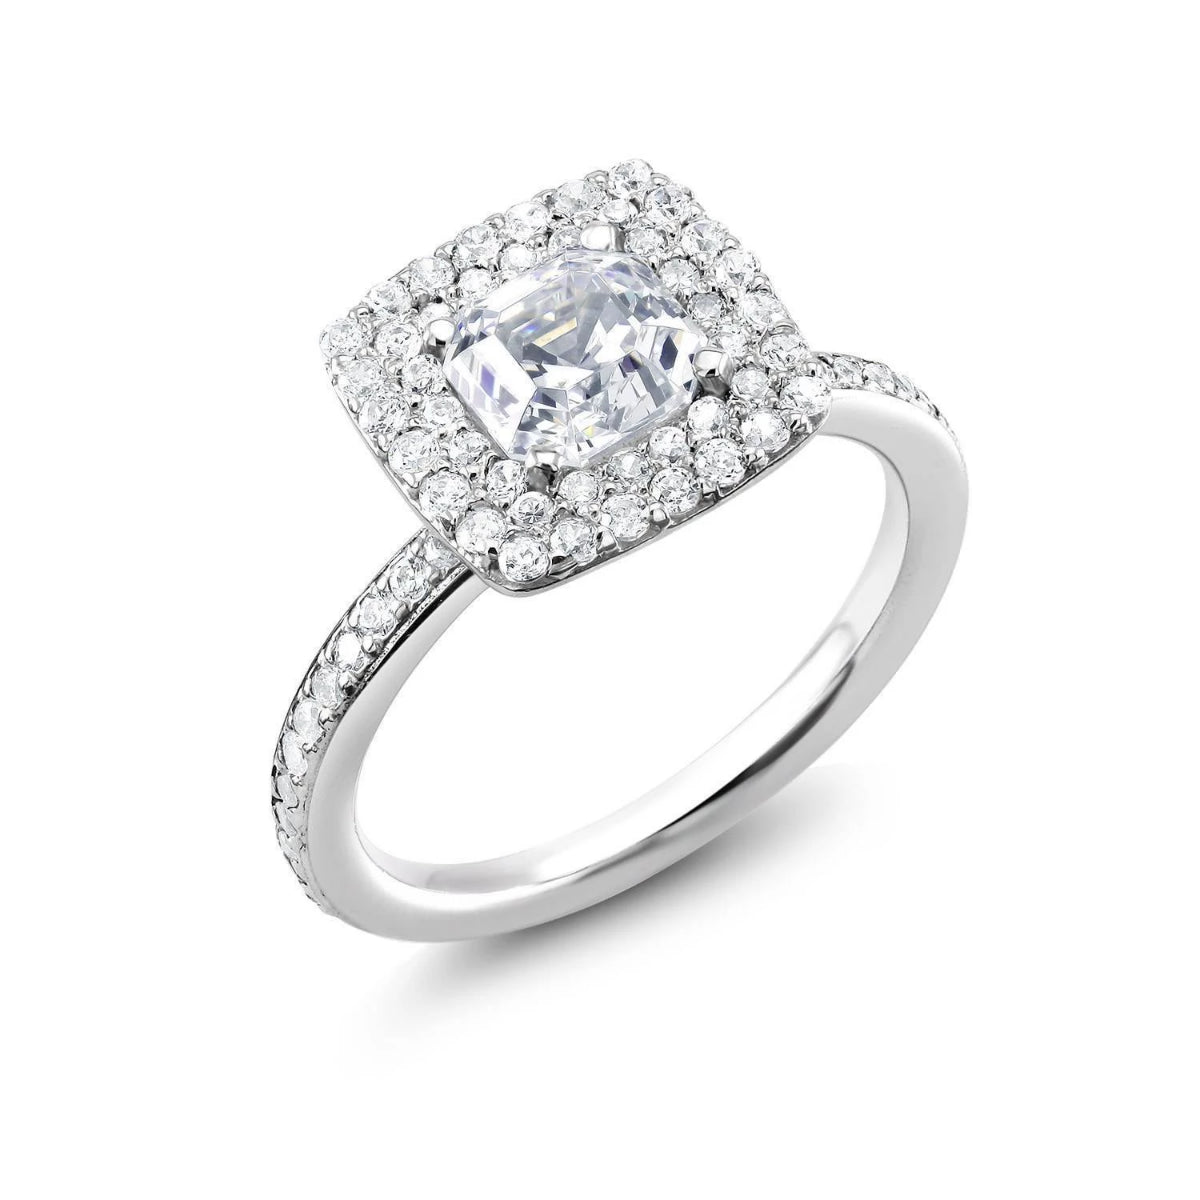 rings diamond engagement simone shop deals diamonds vancouver